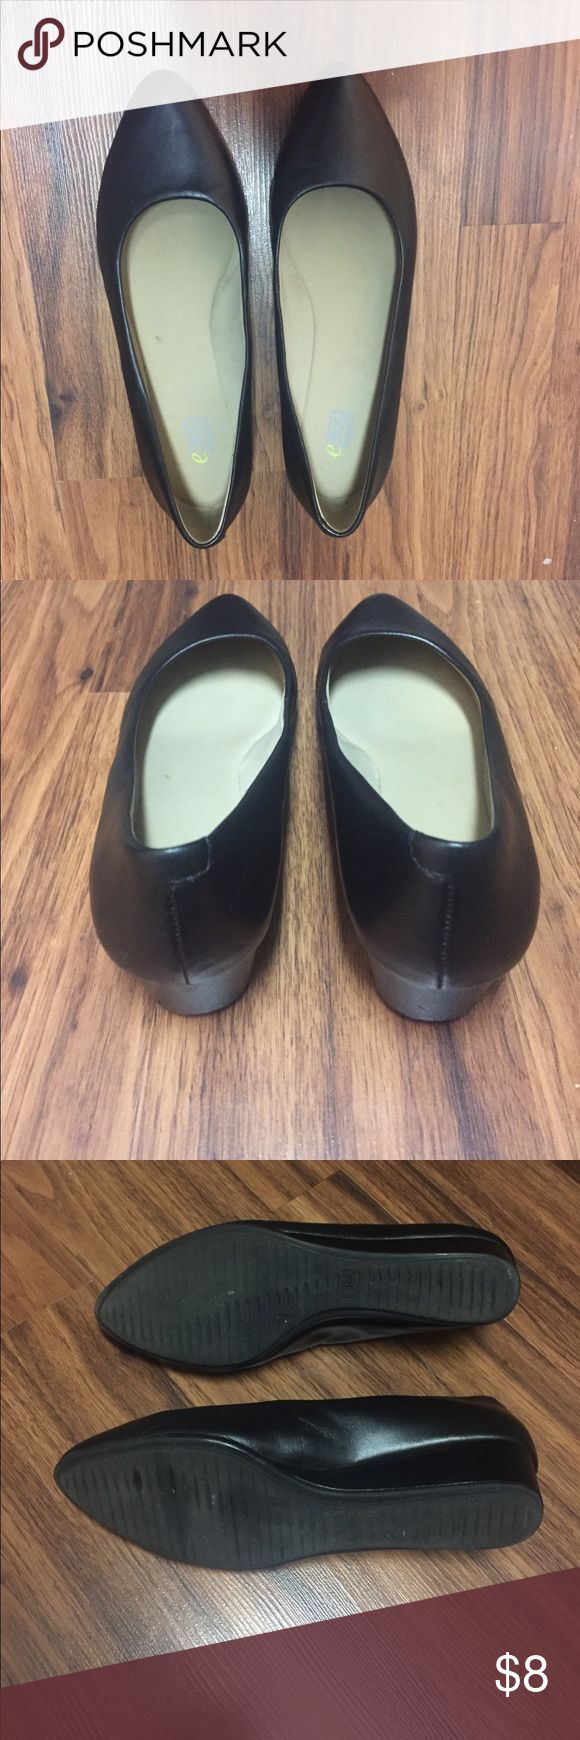 Easy Spirit e360 black wedge shoes Easy Spirit e360 black wedge shoes - leather upper size 6.5 Easy Spirit Shoes Wedges